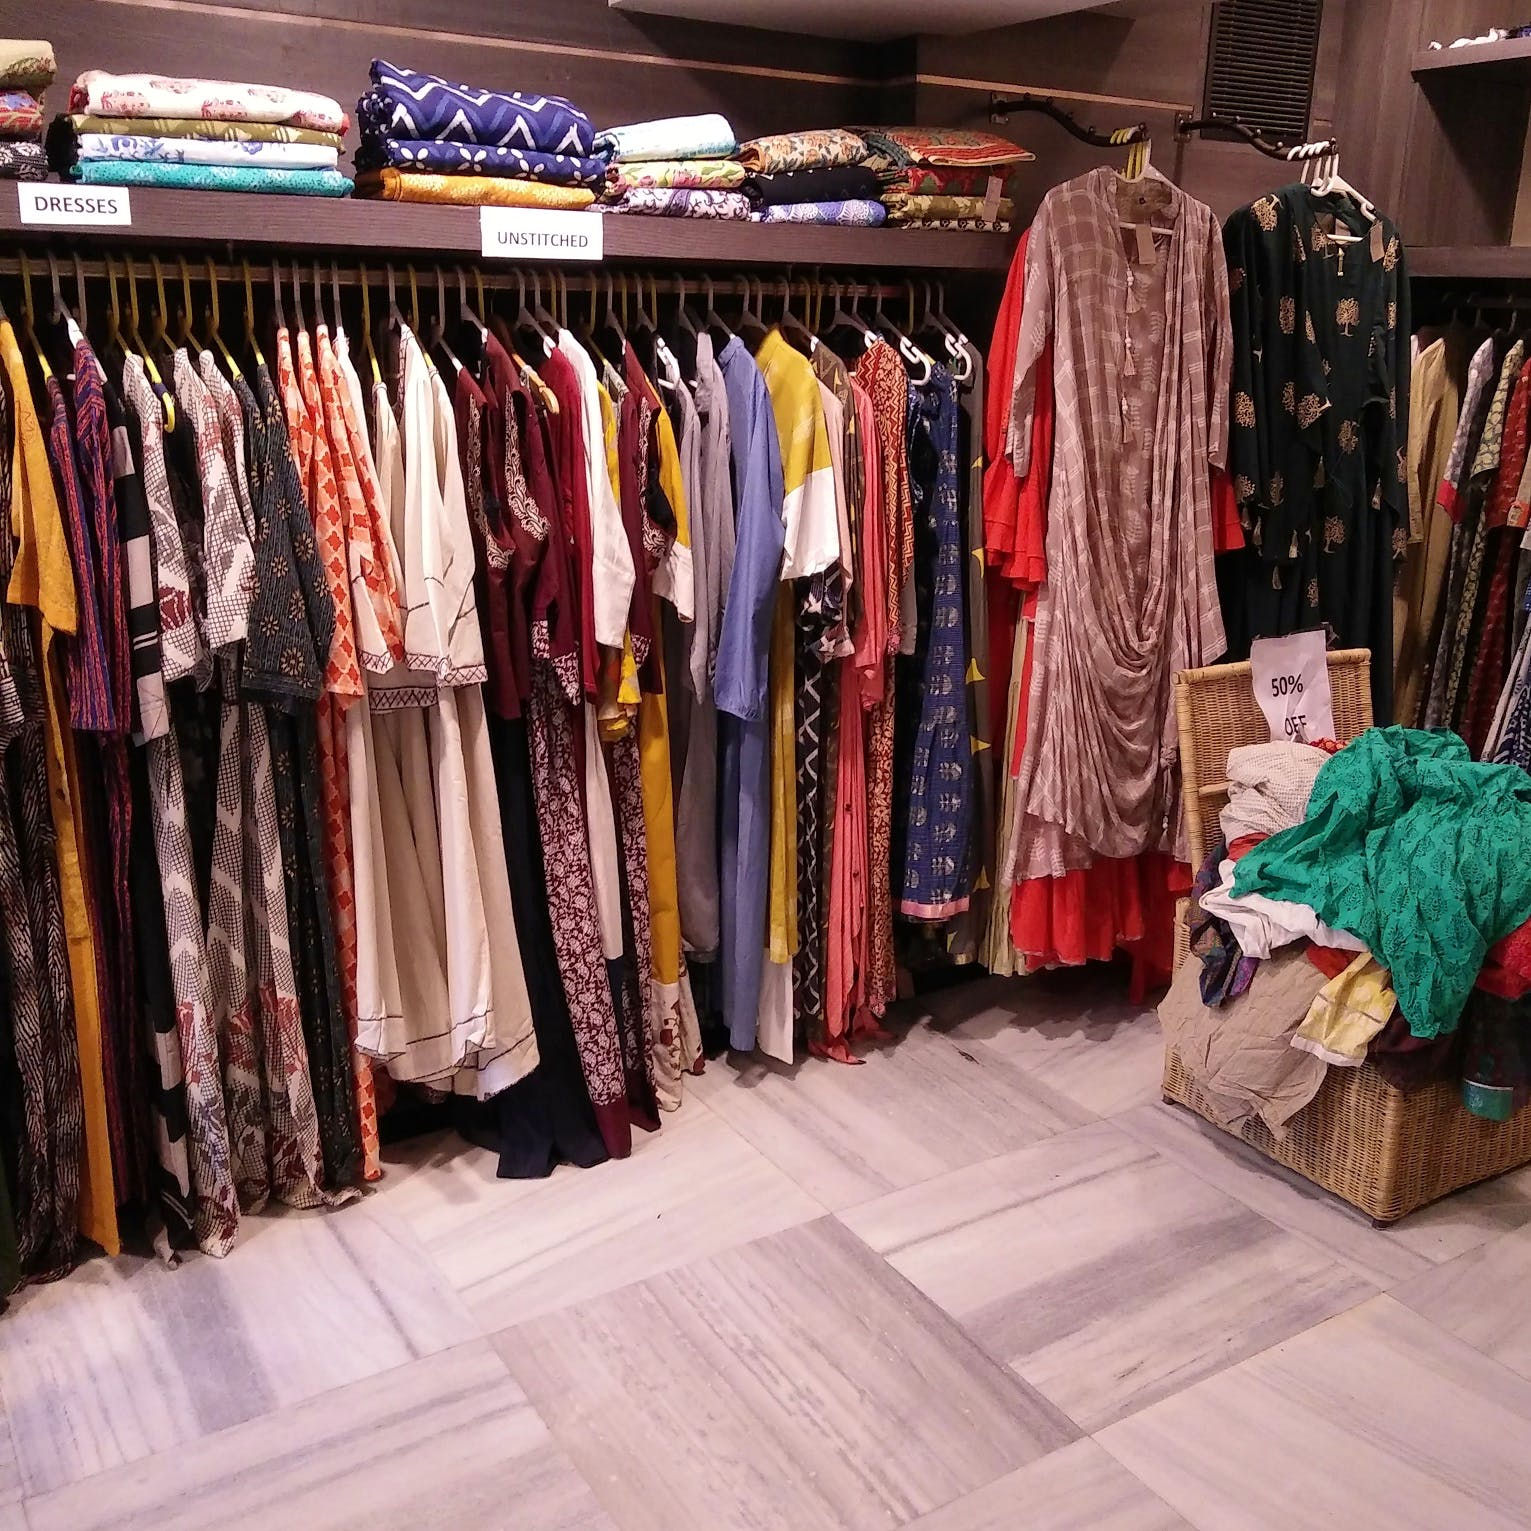 Boutique,Clothing,Closet,Room,Outlet store,Textile,Wardrobe,Retail,Furniture,Building